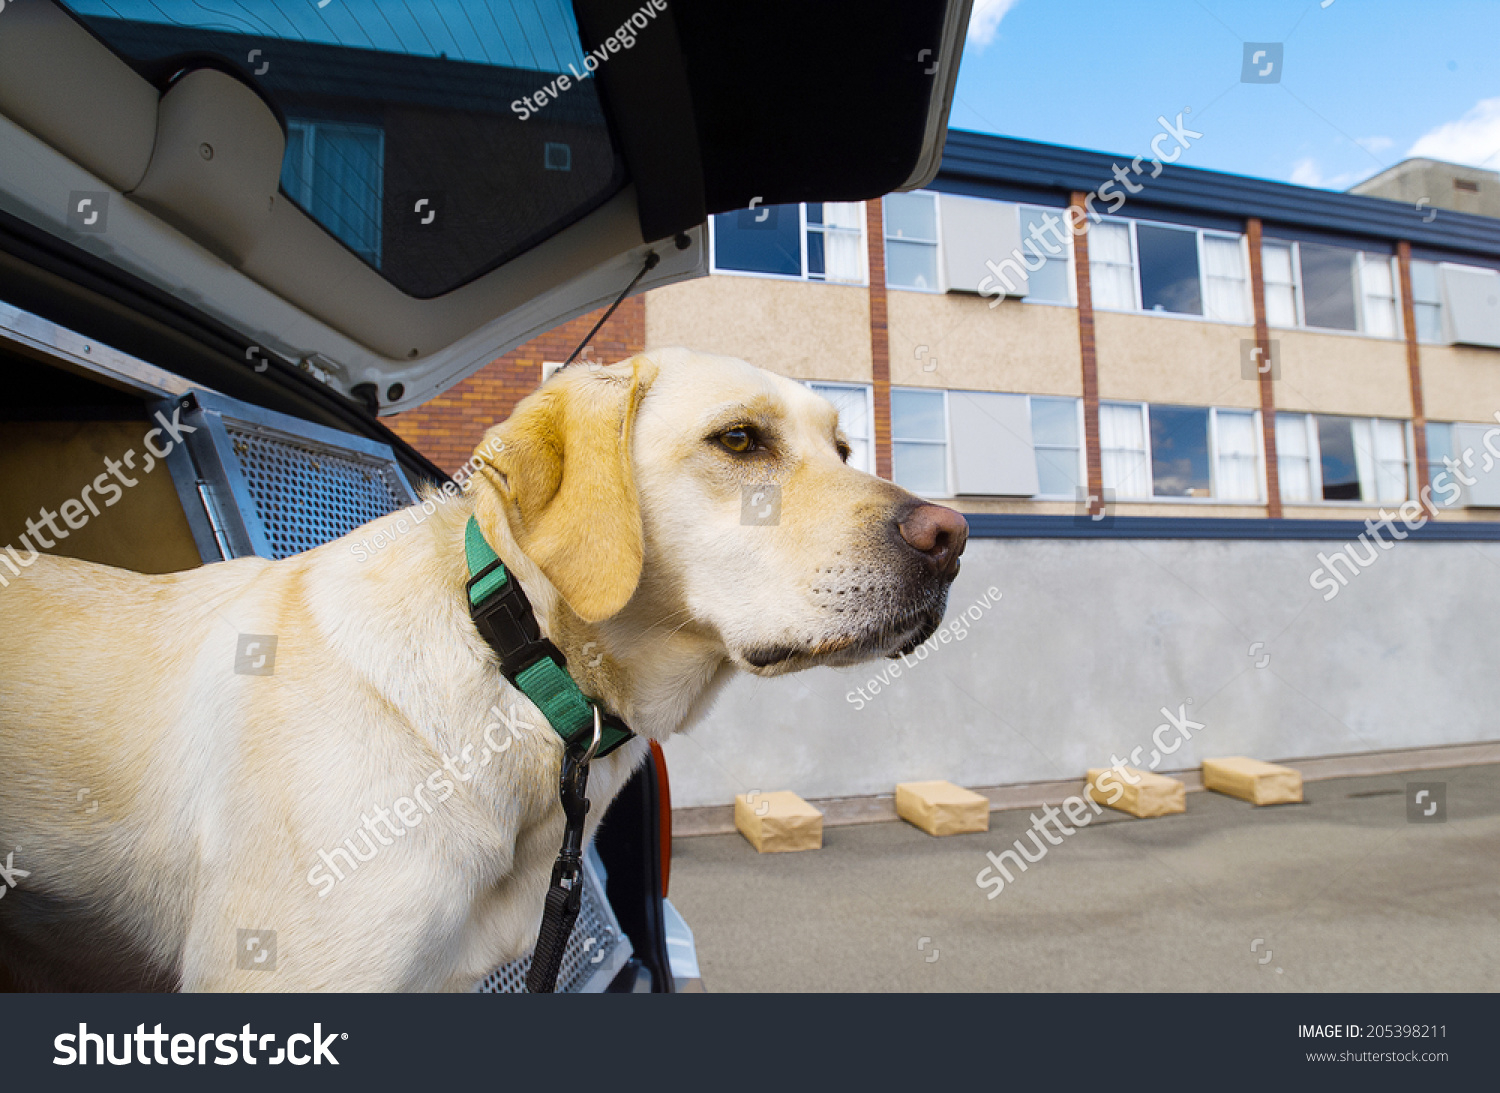 Police Sniffer Dog During A Training Exercise With Sample Packages Stock Photo 205398211 : Shutterstock